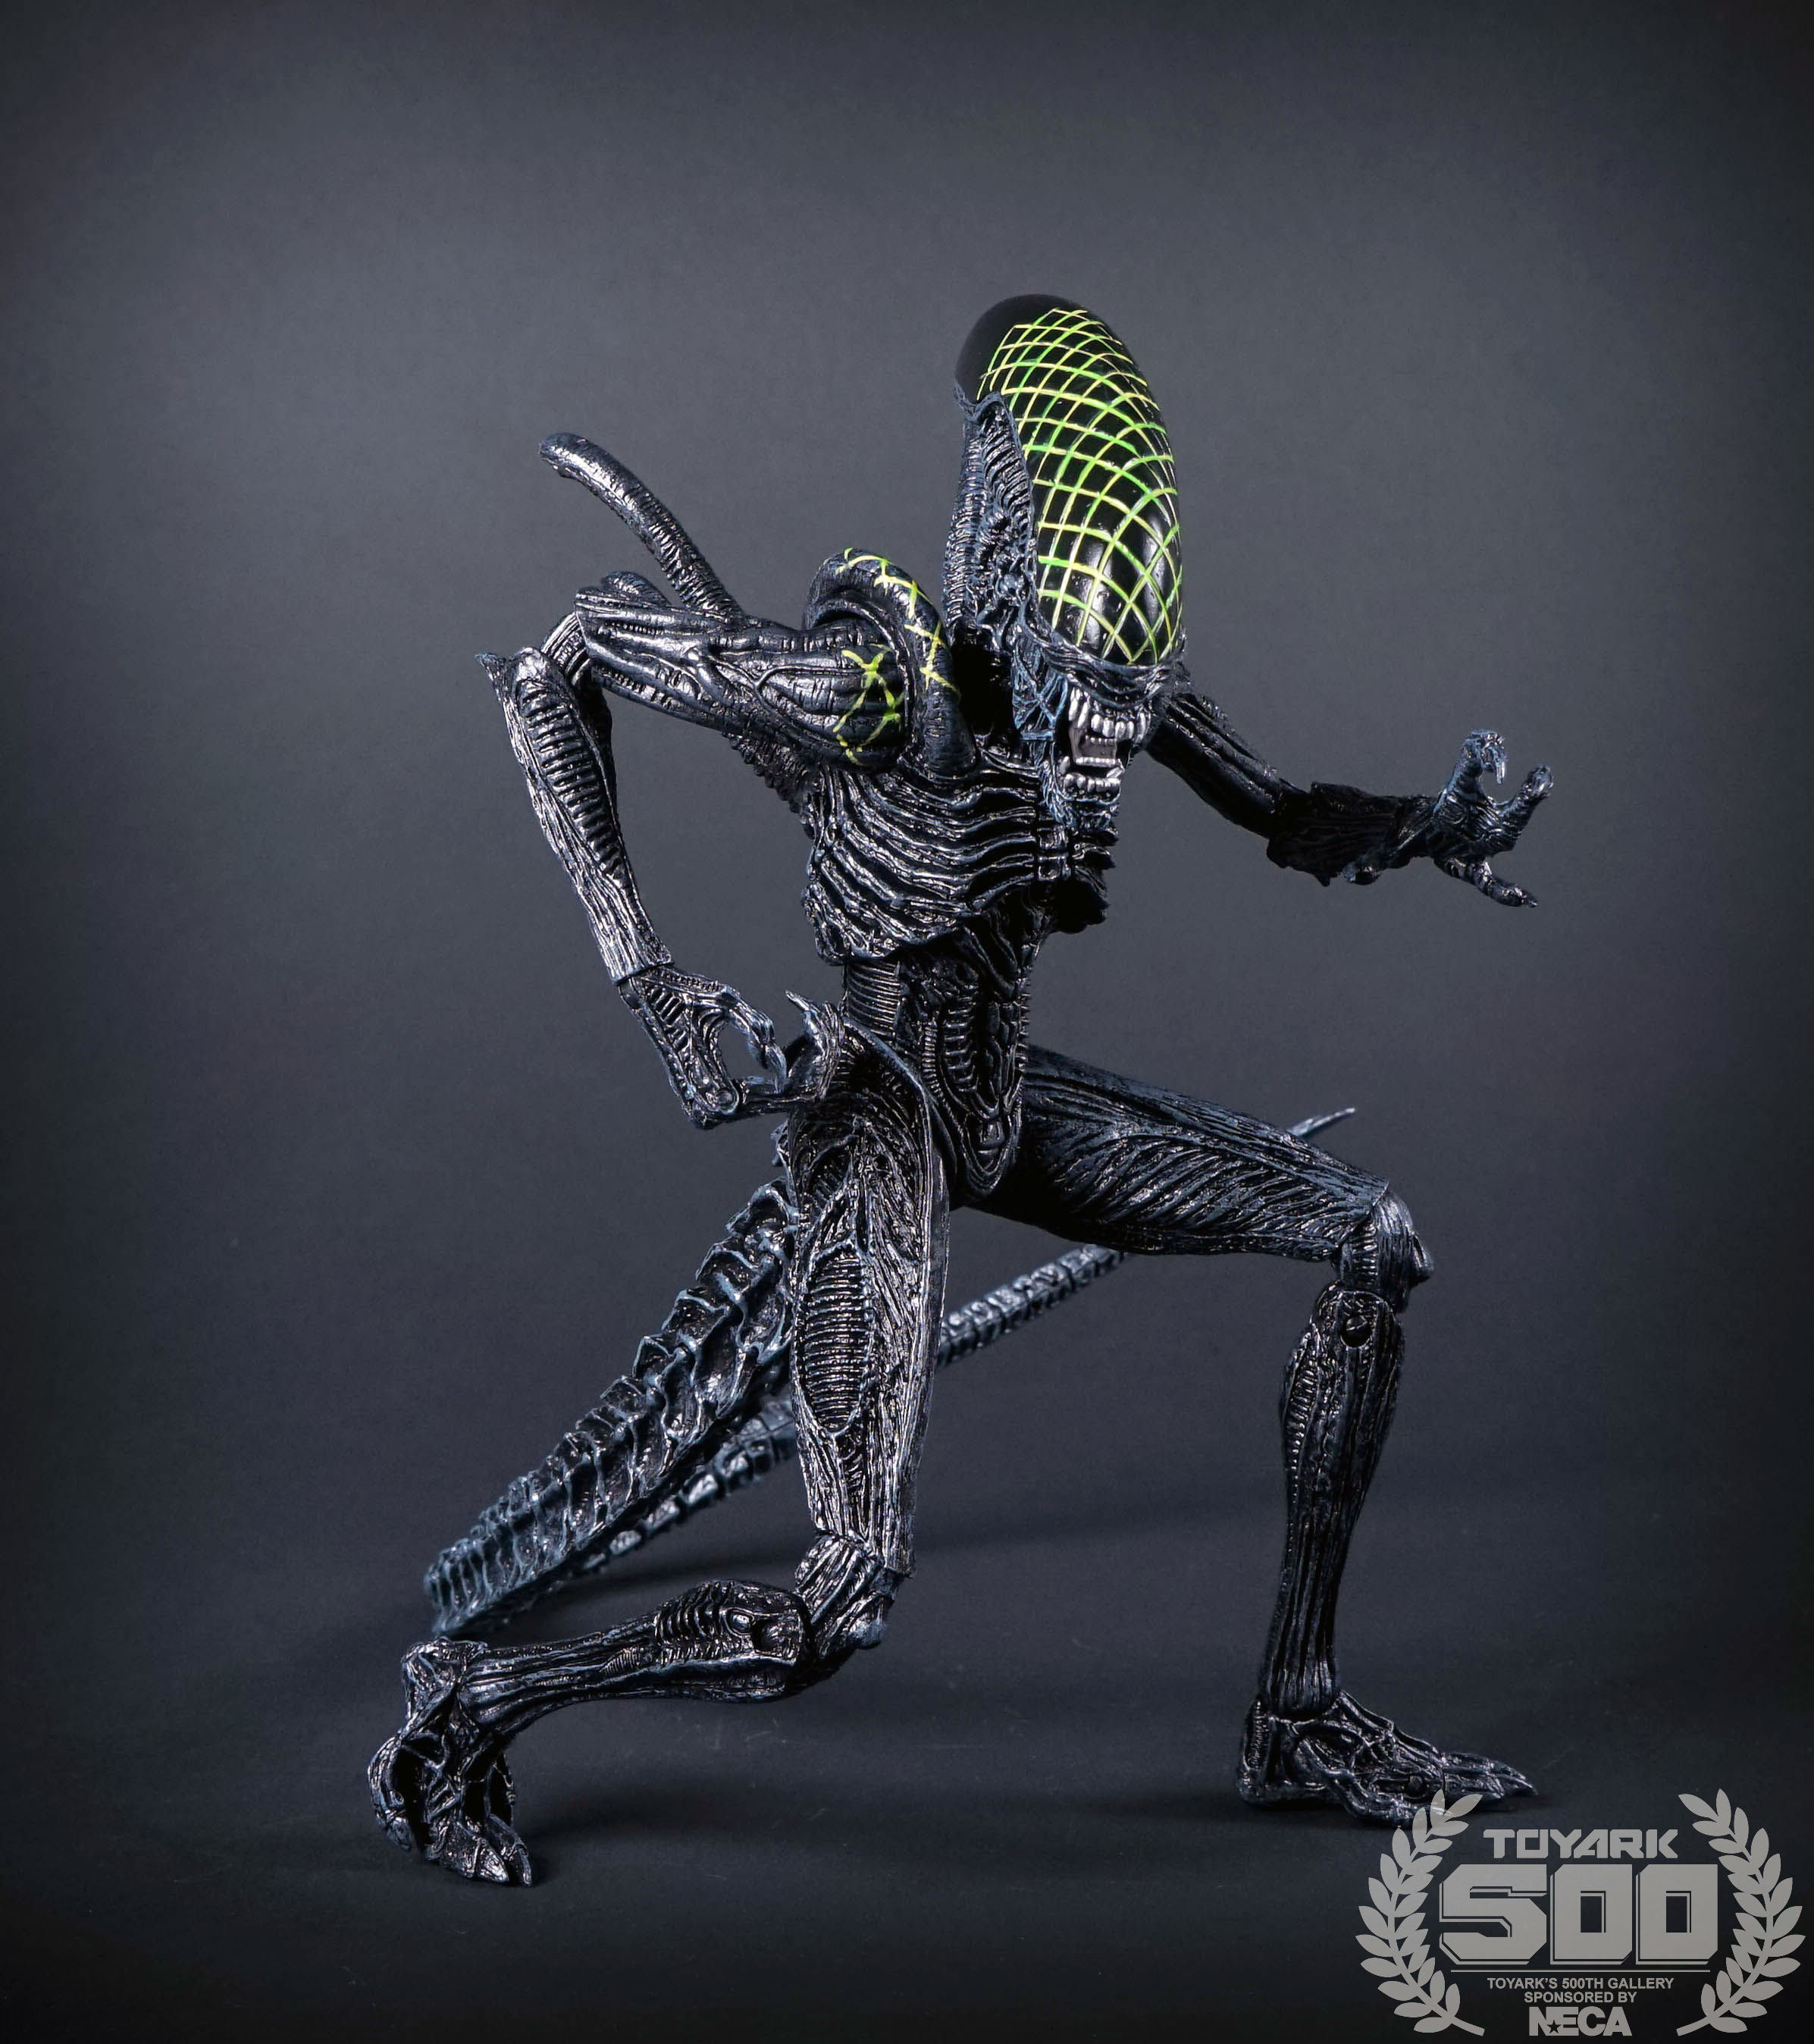 http://news.toyark.com/wp-content/uploads/sites/4/2016/01/Alien-Series-7-NECA-066.jpg